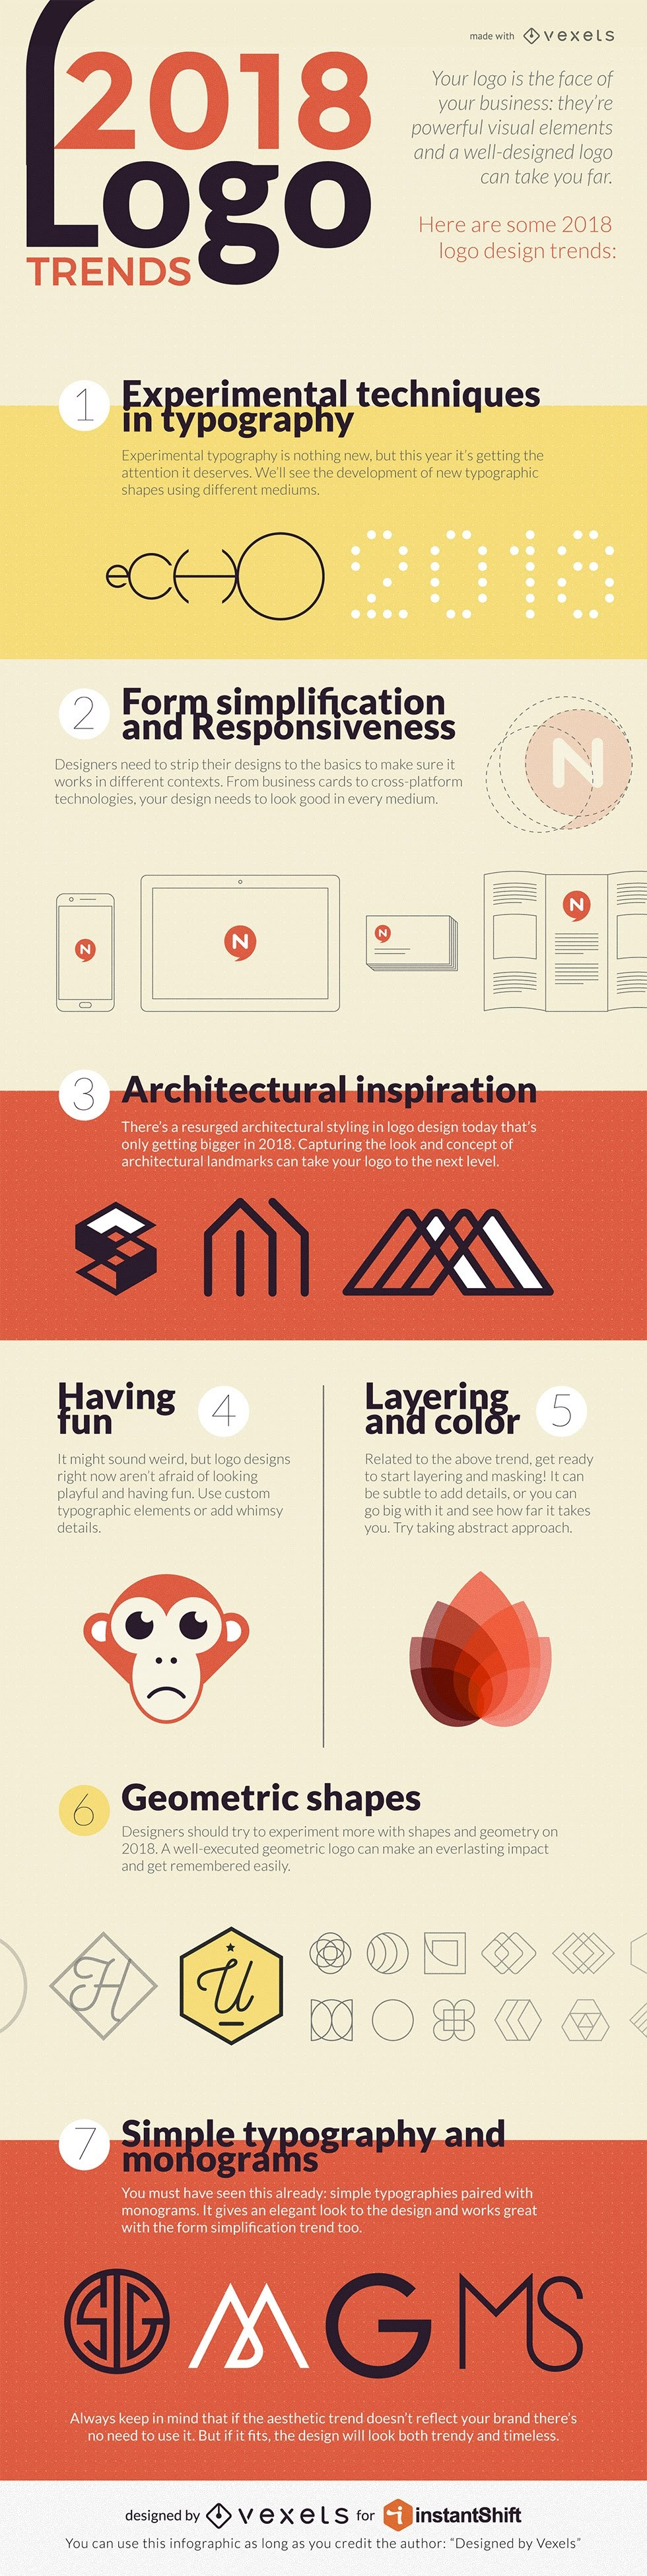 2018 LogoTrends - #Infographic